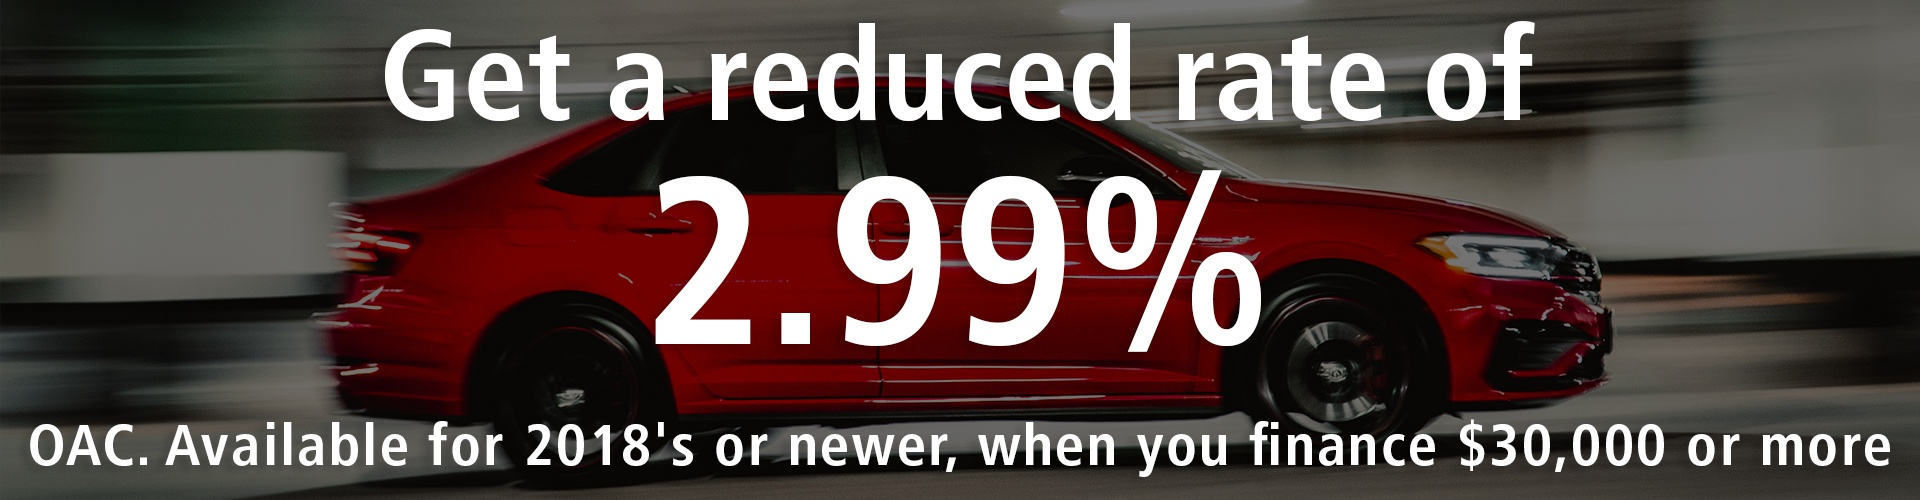 Get a reduced rate of 2.99% only at AutoEdge preowned Pre-owned vehicles 2018 or newer above $30,000 - Qualify for a reduced rate of 2.99%. Volkswagen, Toyota, Mazda, Audi, Kia, Subaru at AutoEdge